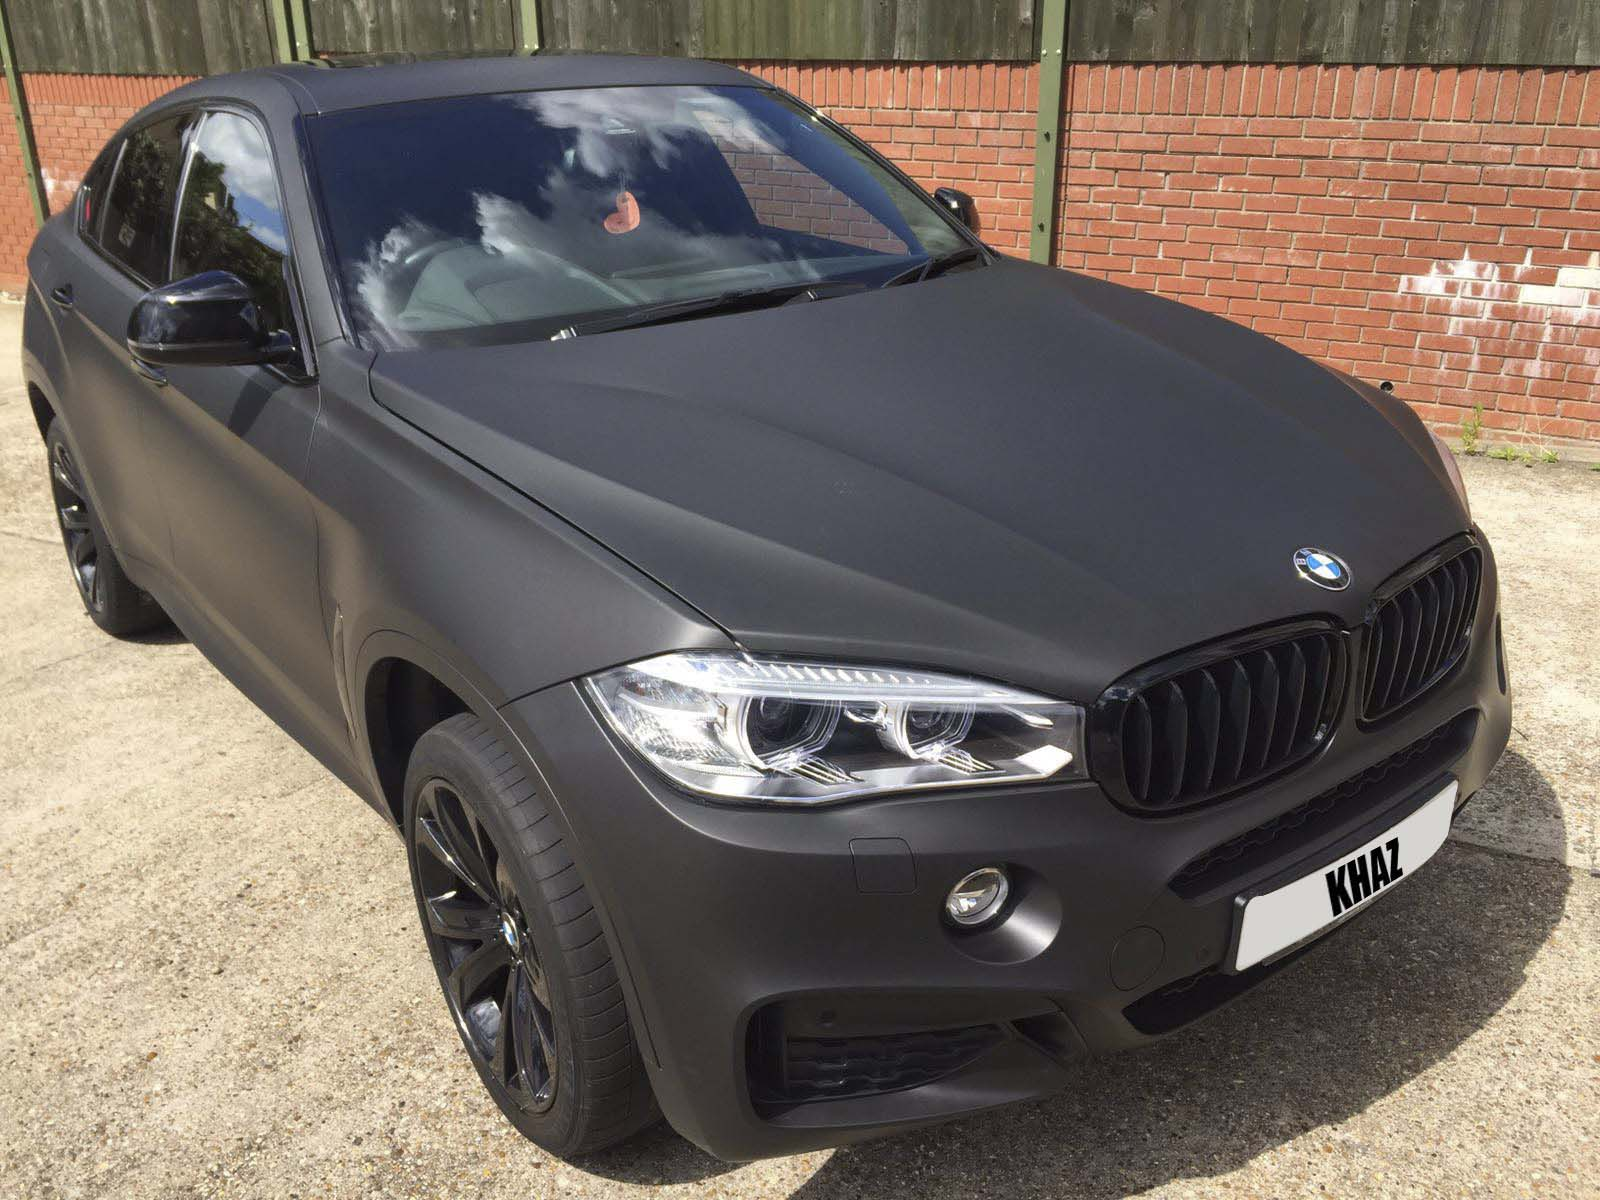 X6 BMW Wrapped Matte Black